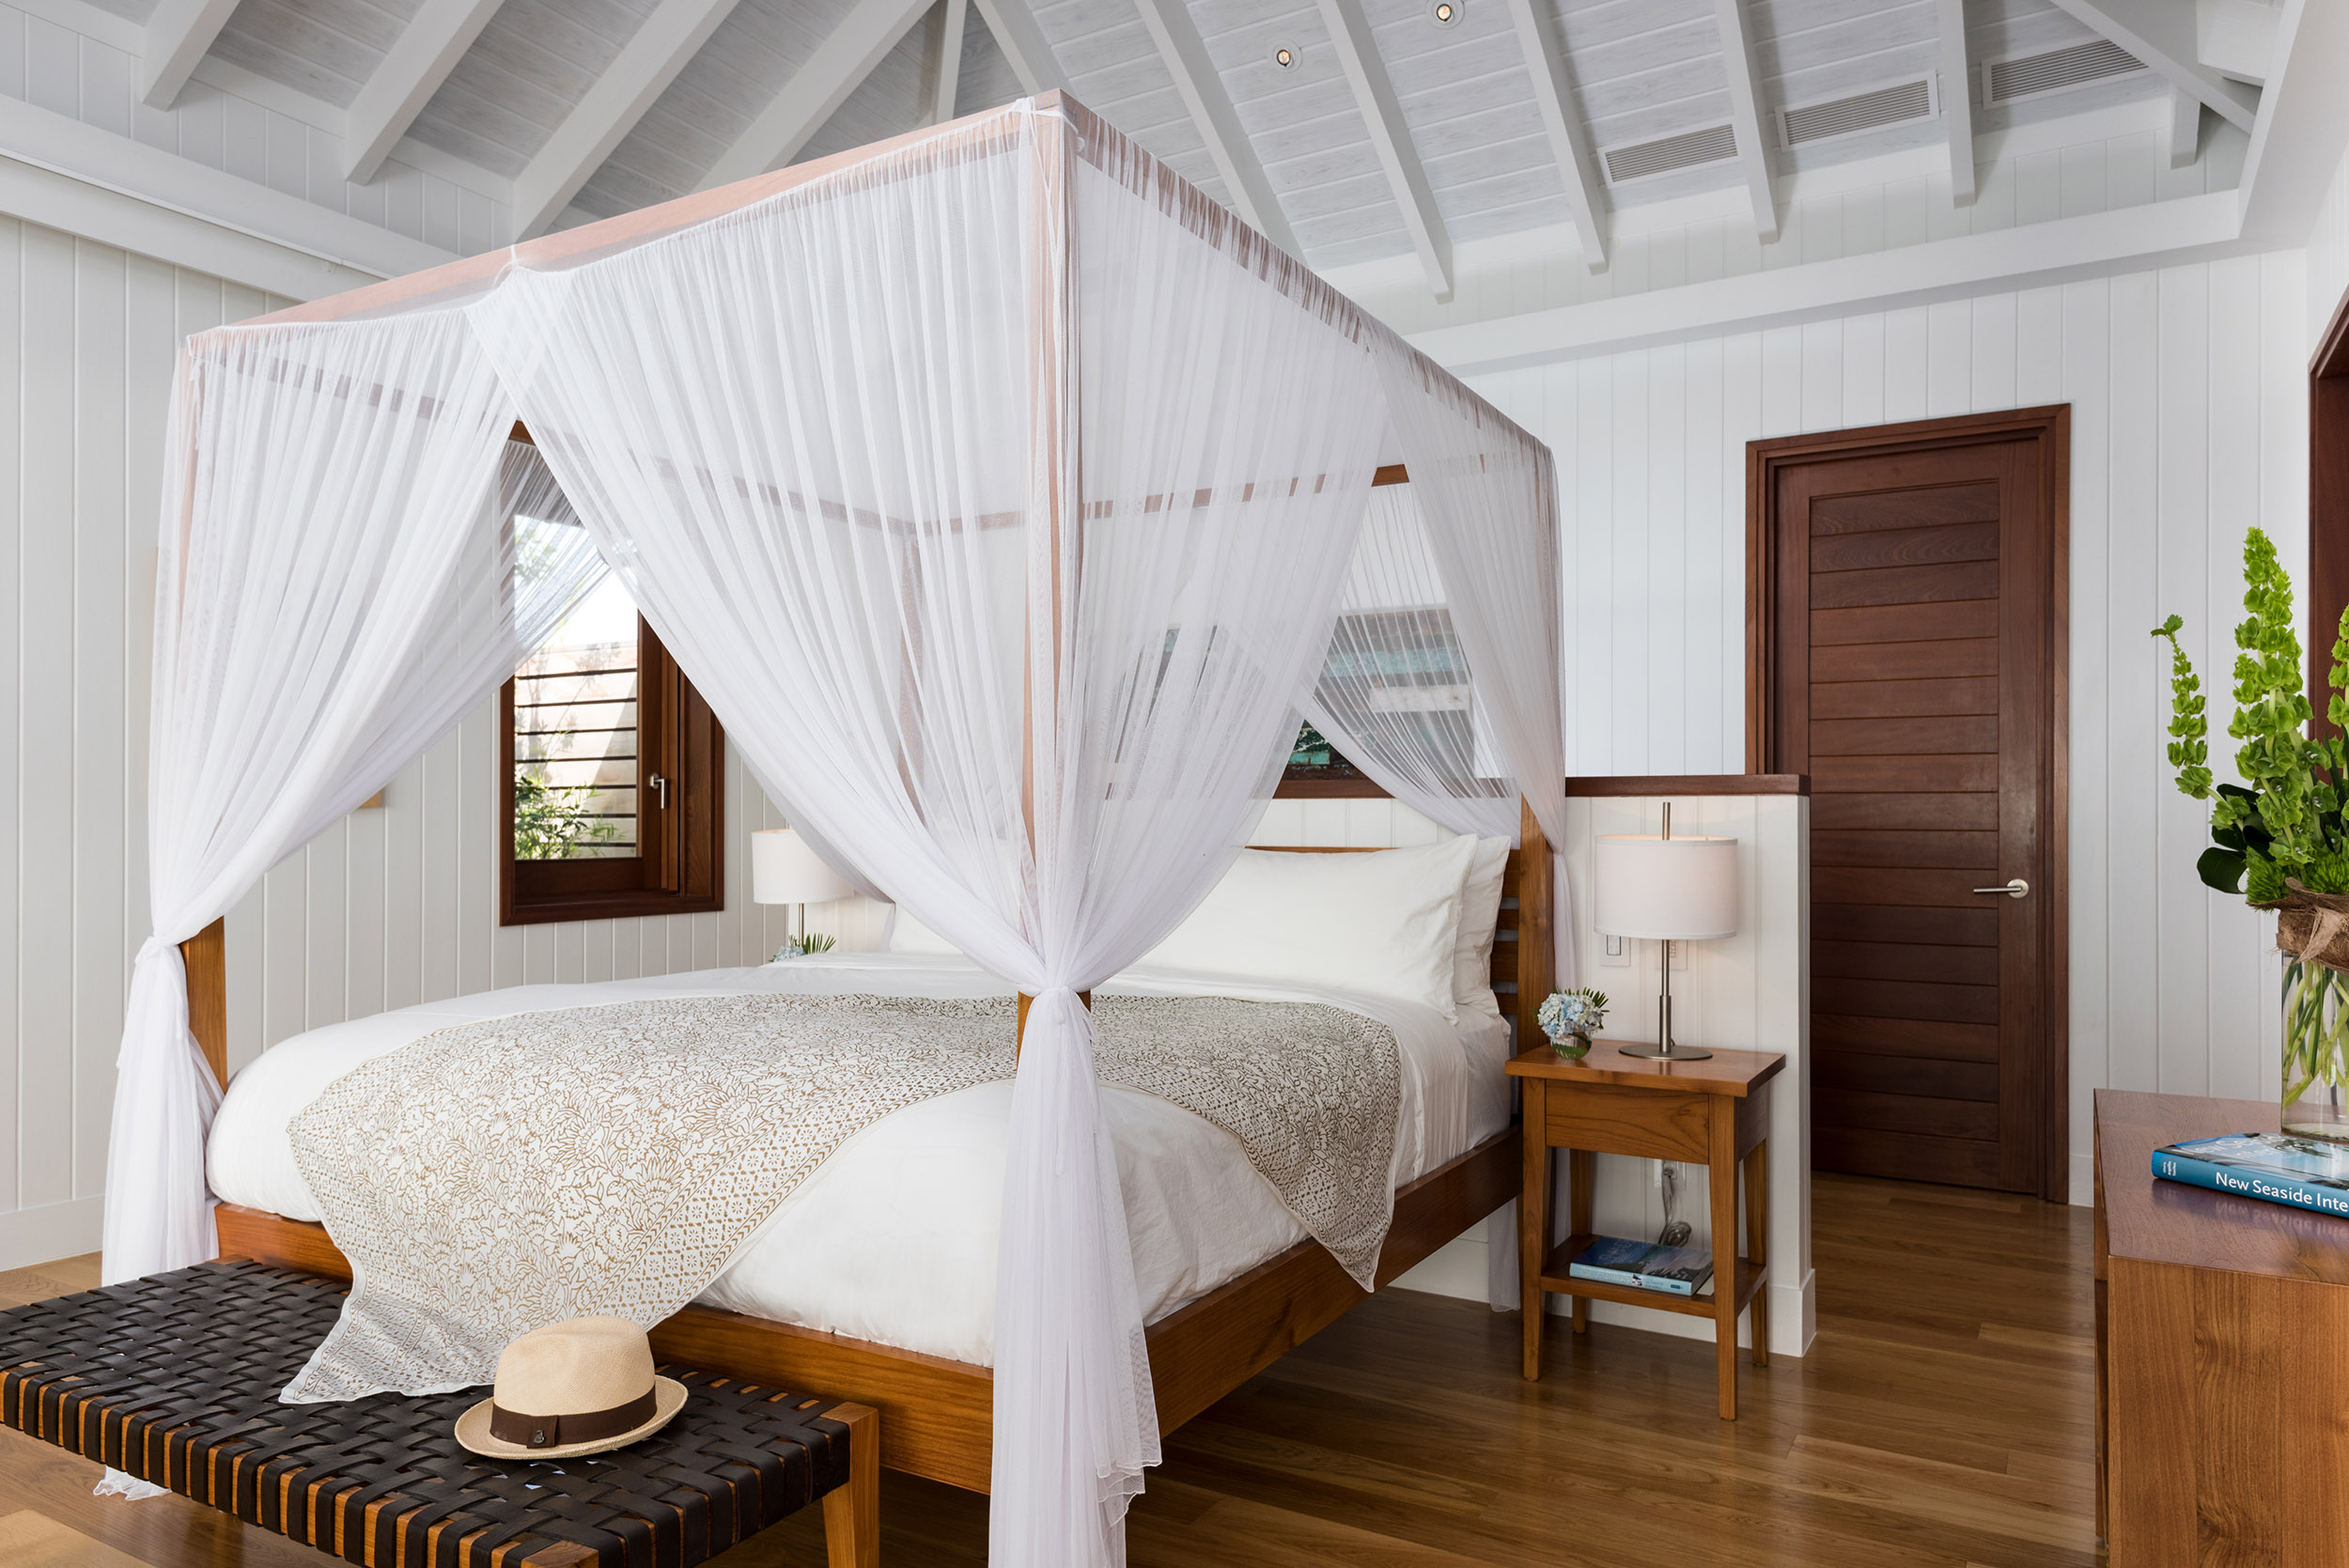 Serenity - view of one of the bedrooms